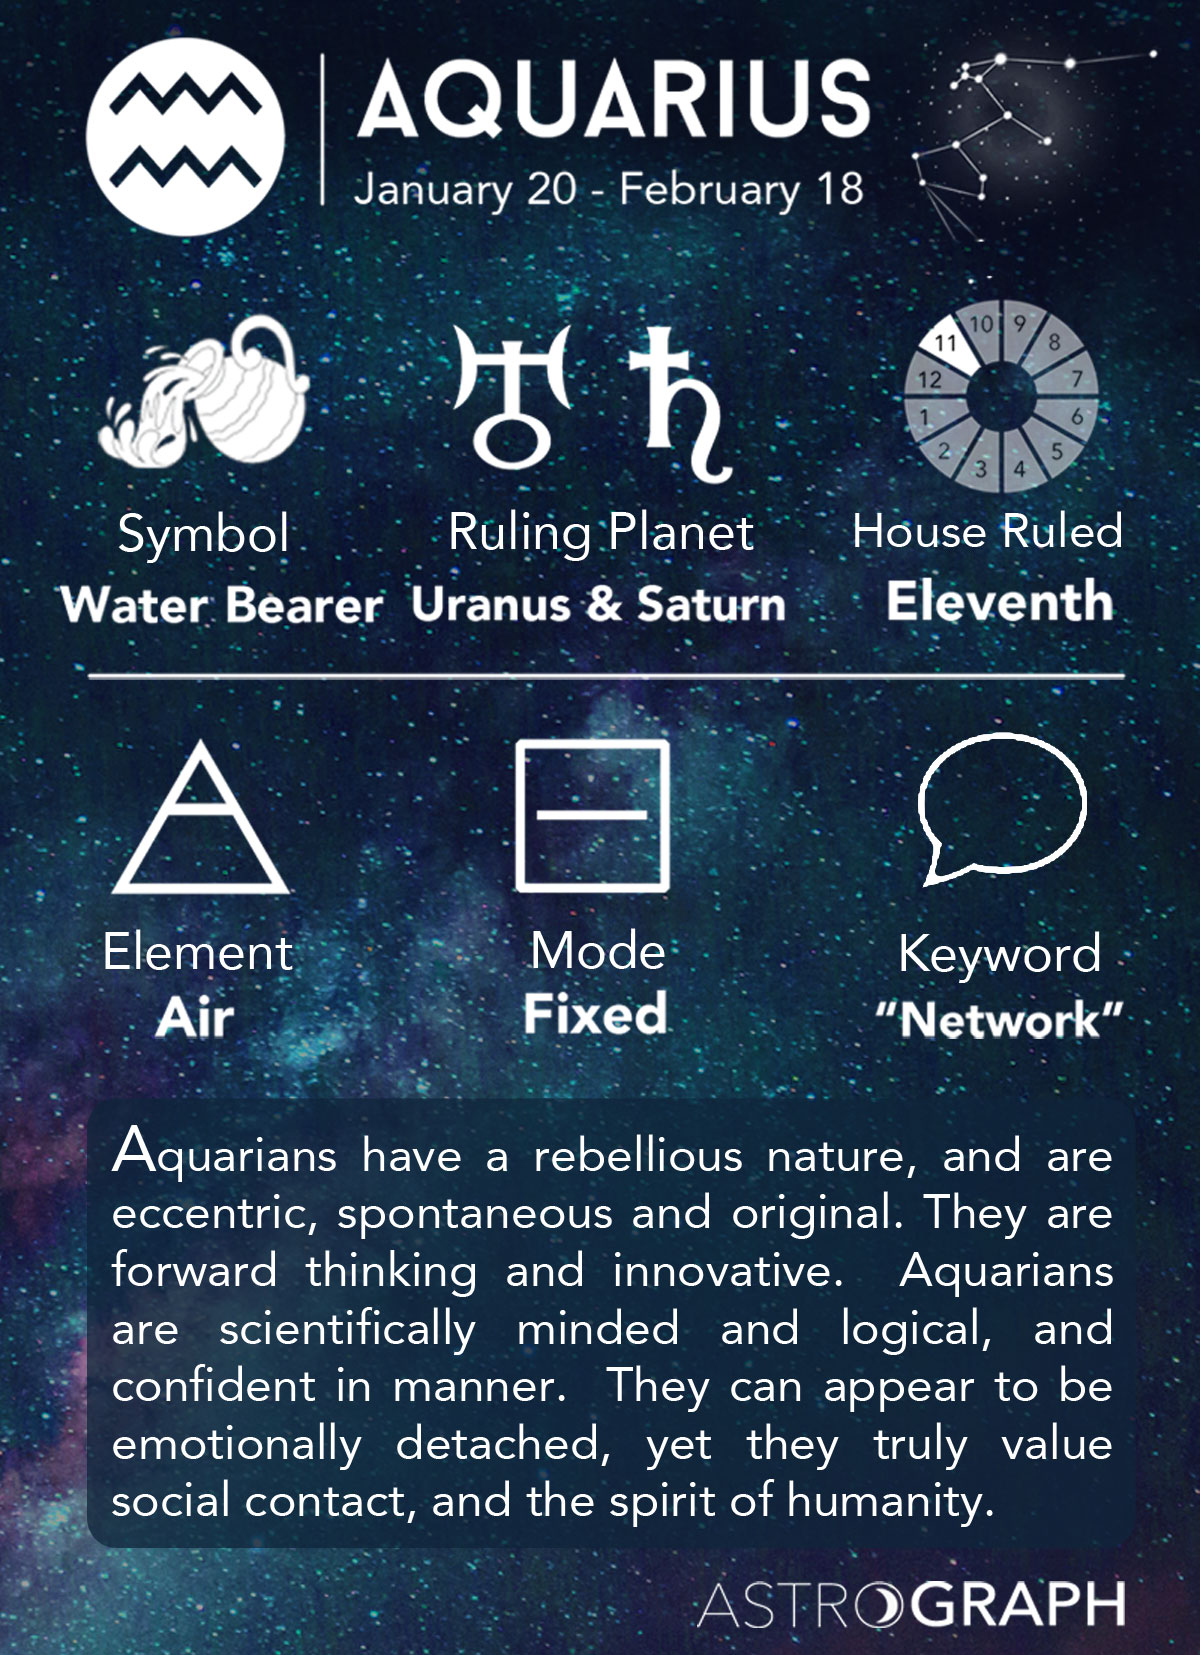 details about aquarius horoscope